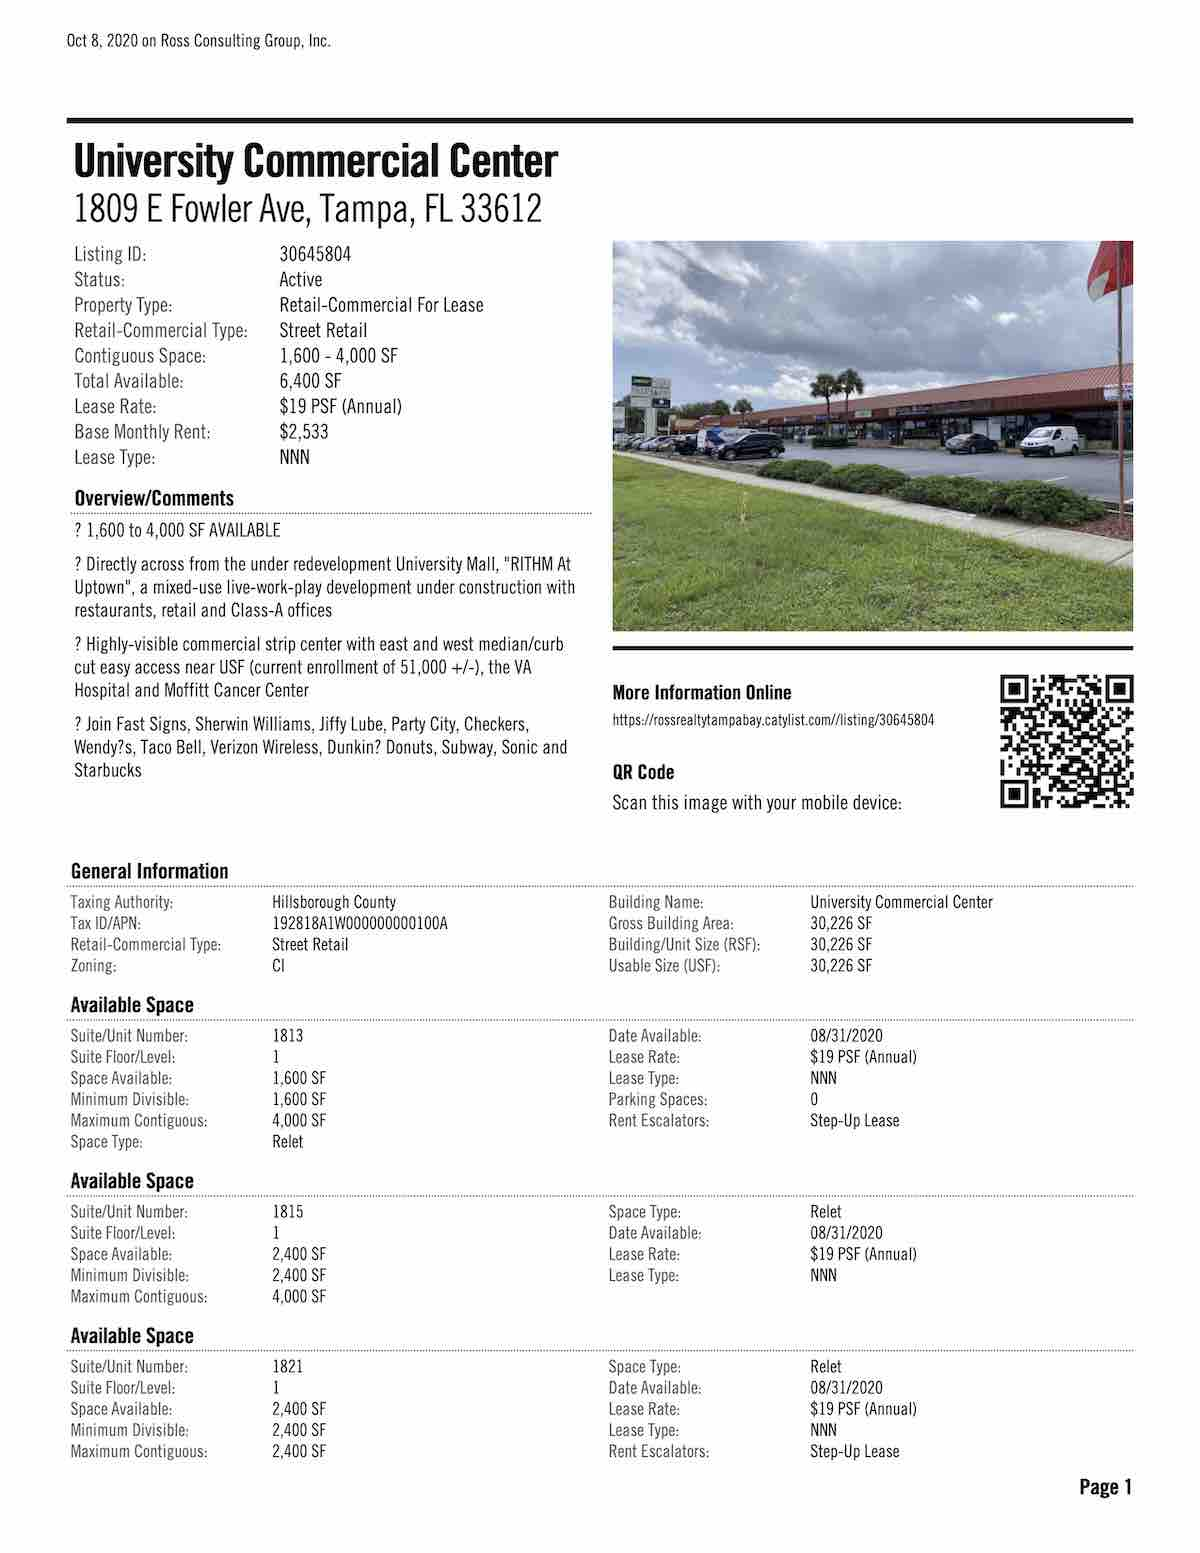 FOR LEASE - University Commercial Center - 1809 E Fowler Ave, Tampa, FL 33612 P1